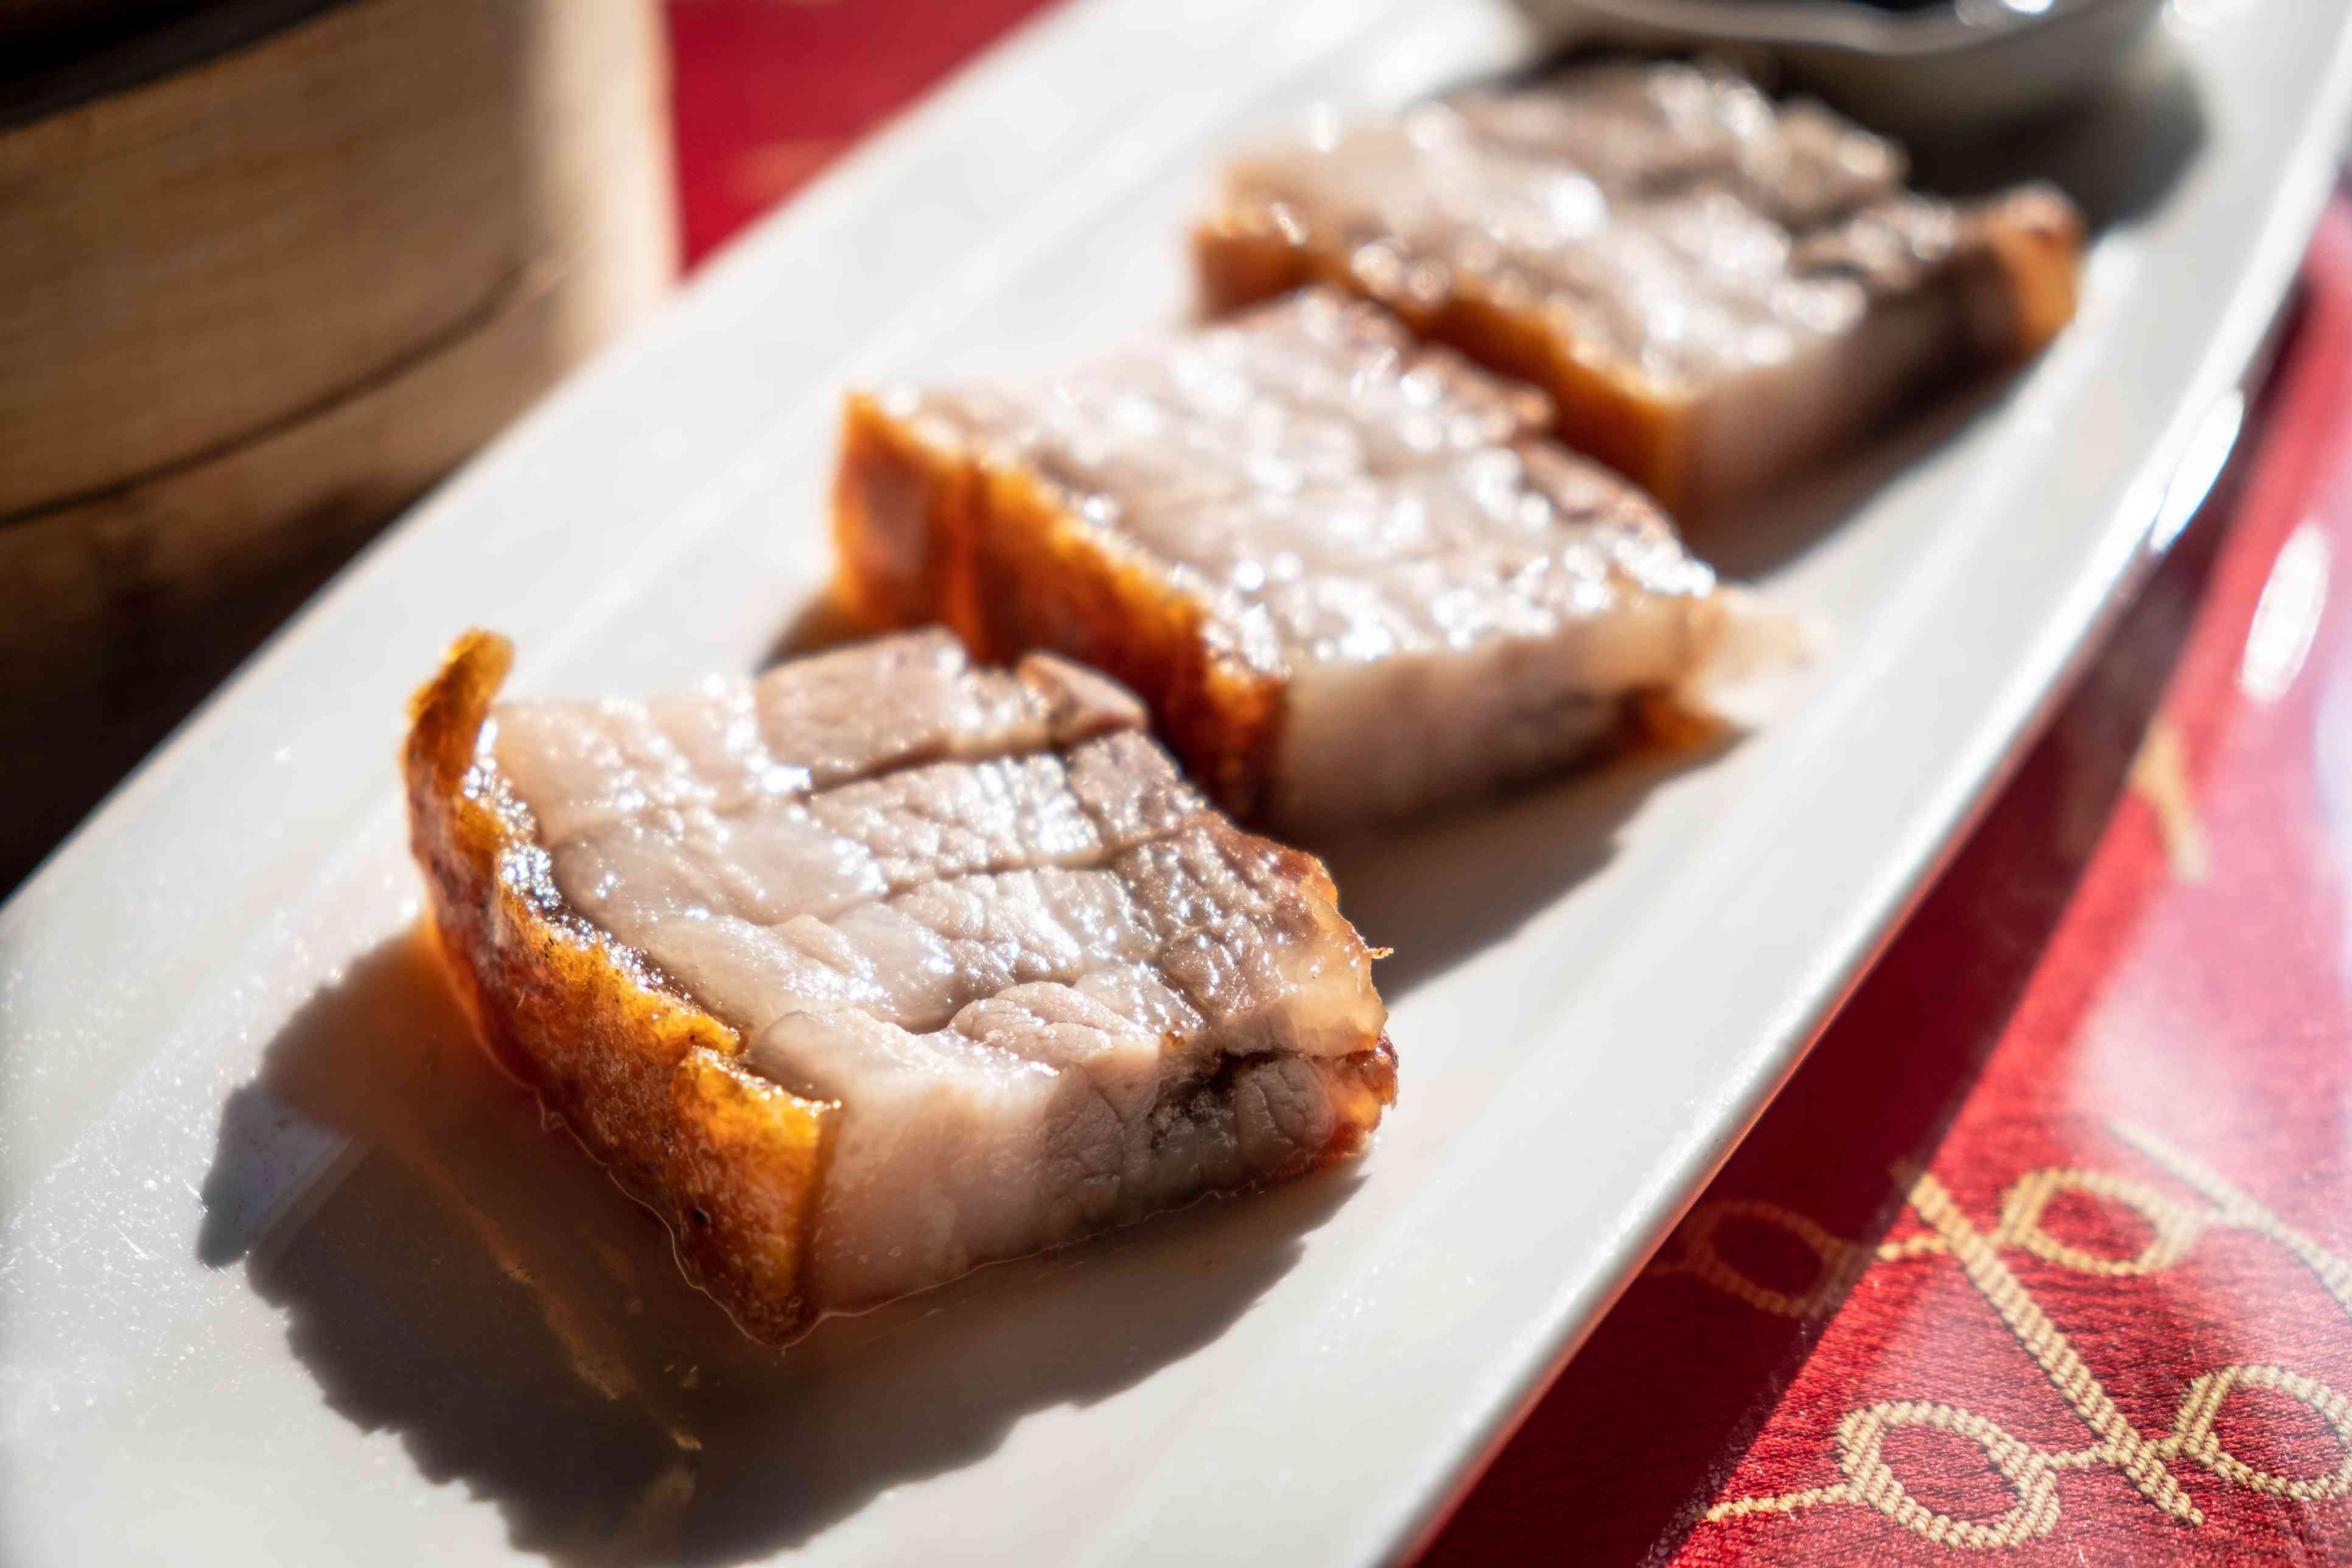 Chinese crackling pork belly with grilled crispy skin